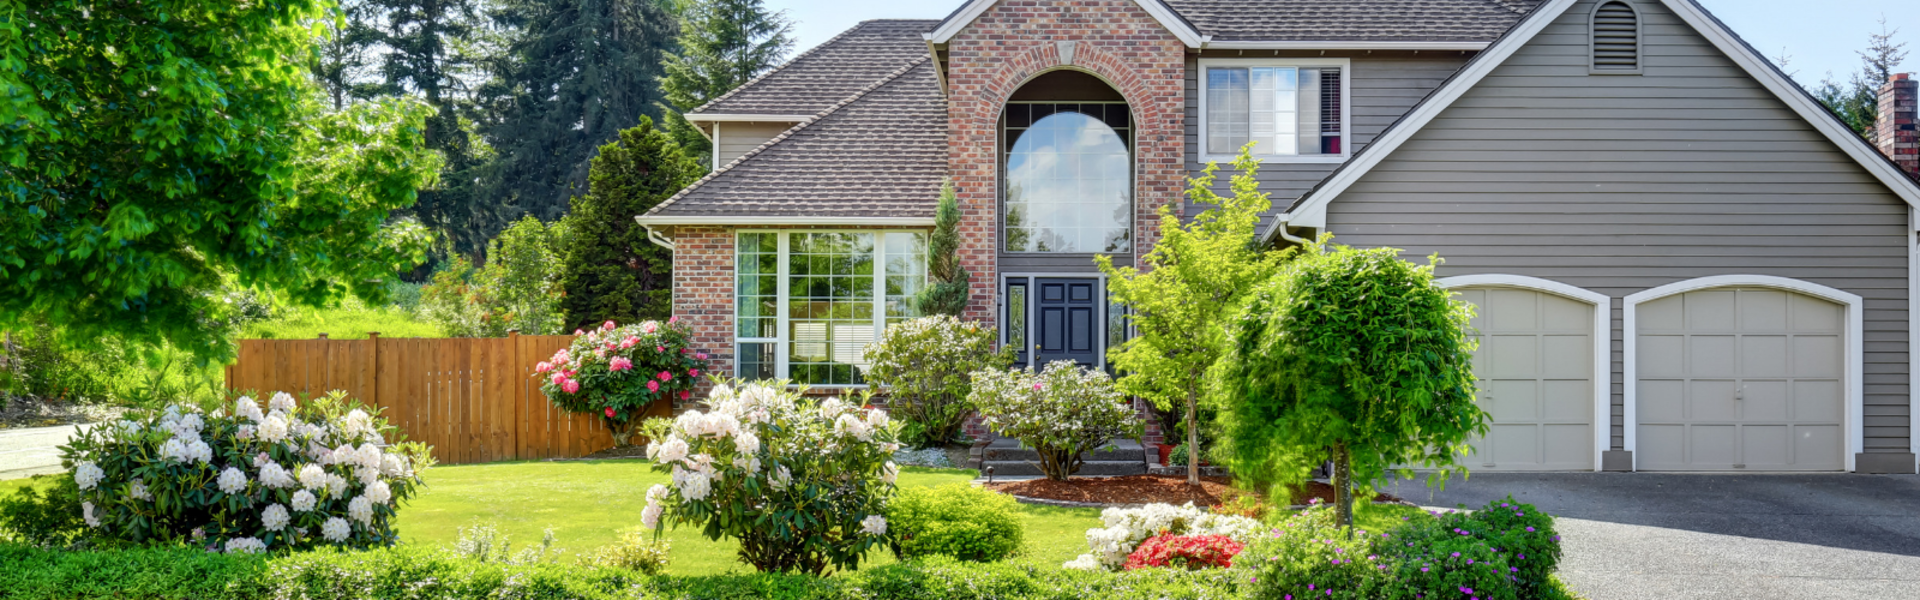 Keller Williams Newtown Open House July 13th – July 14th